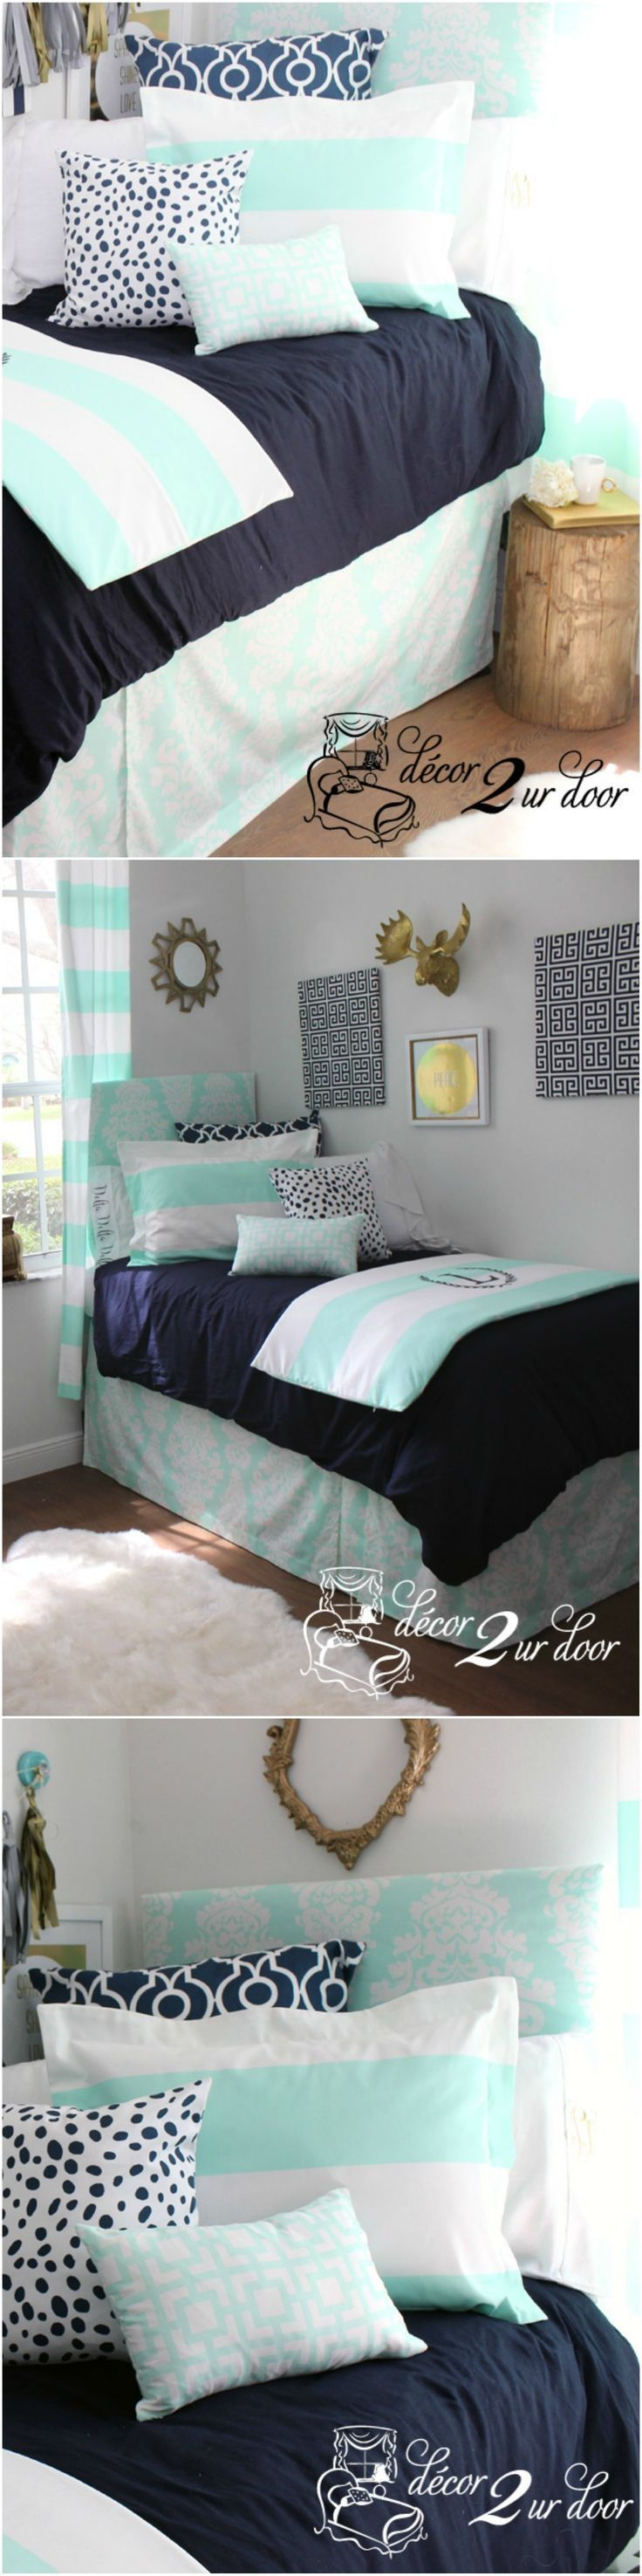 Decorating a dorm room? Check out Décor 2 Ur Door for the latest dorm room decorating trends. Dorm Room Décor. Custom-made Designer Dorm Room Bedding. Design your own dorm room bedding. Designer dorm headboard, dorm bed scarf, dorm bed skirt/dorm dust ruffle, monogram dorm room pillows, dorm room window treatment, lofted dorm bed décor, dorm room wall monogram, chair cover for dorm room, modern dorm room furniture and so much more…